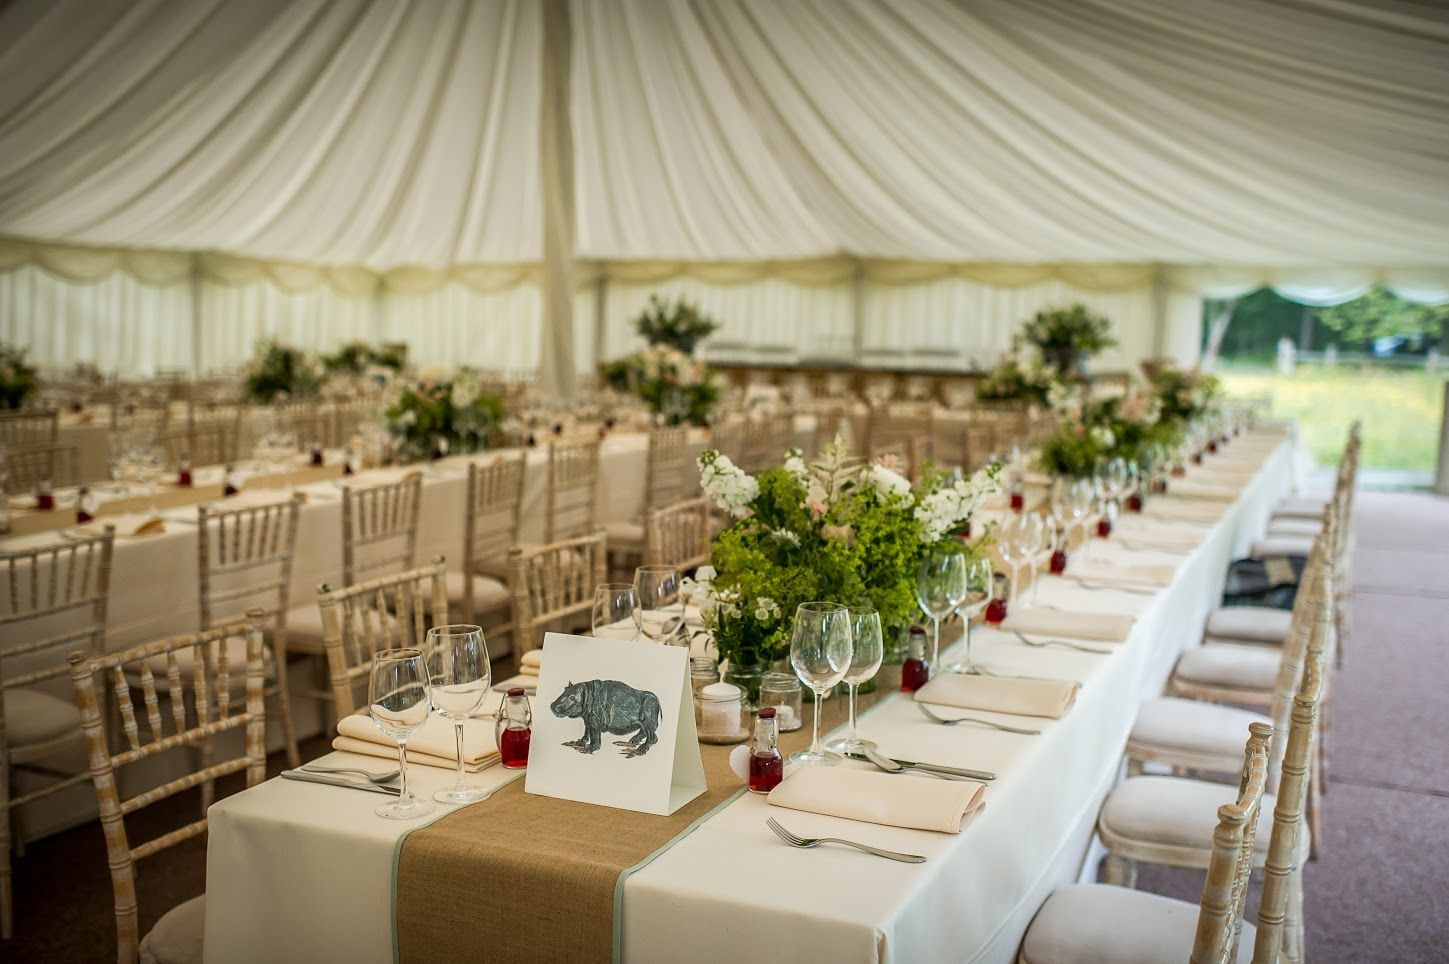 Wedding marquee decoration ideas  Pure elegance and simplicity in our traditional pole marquee